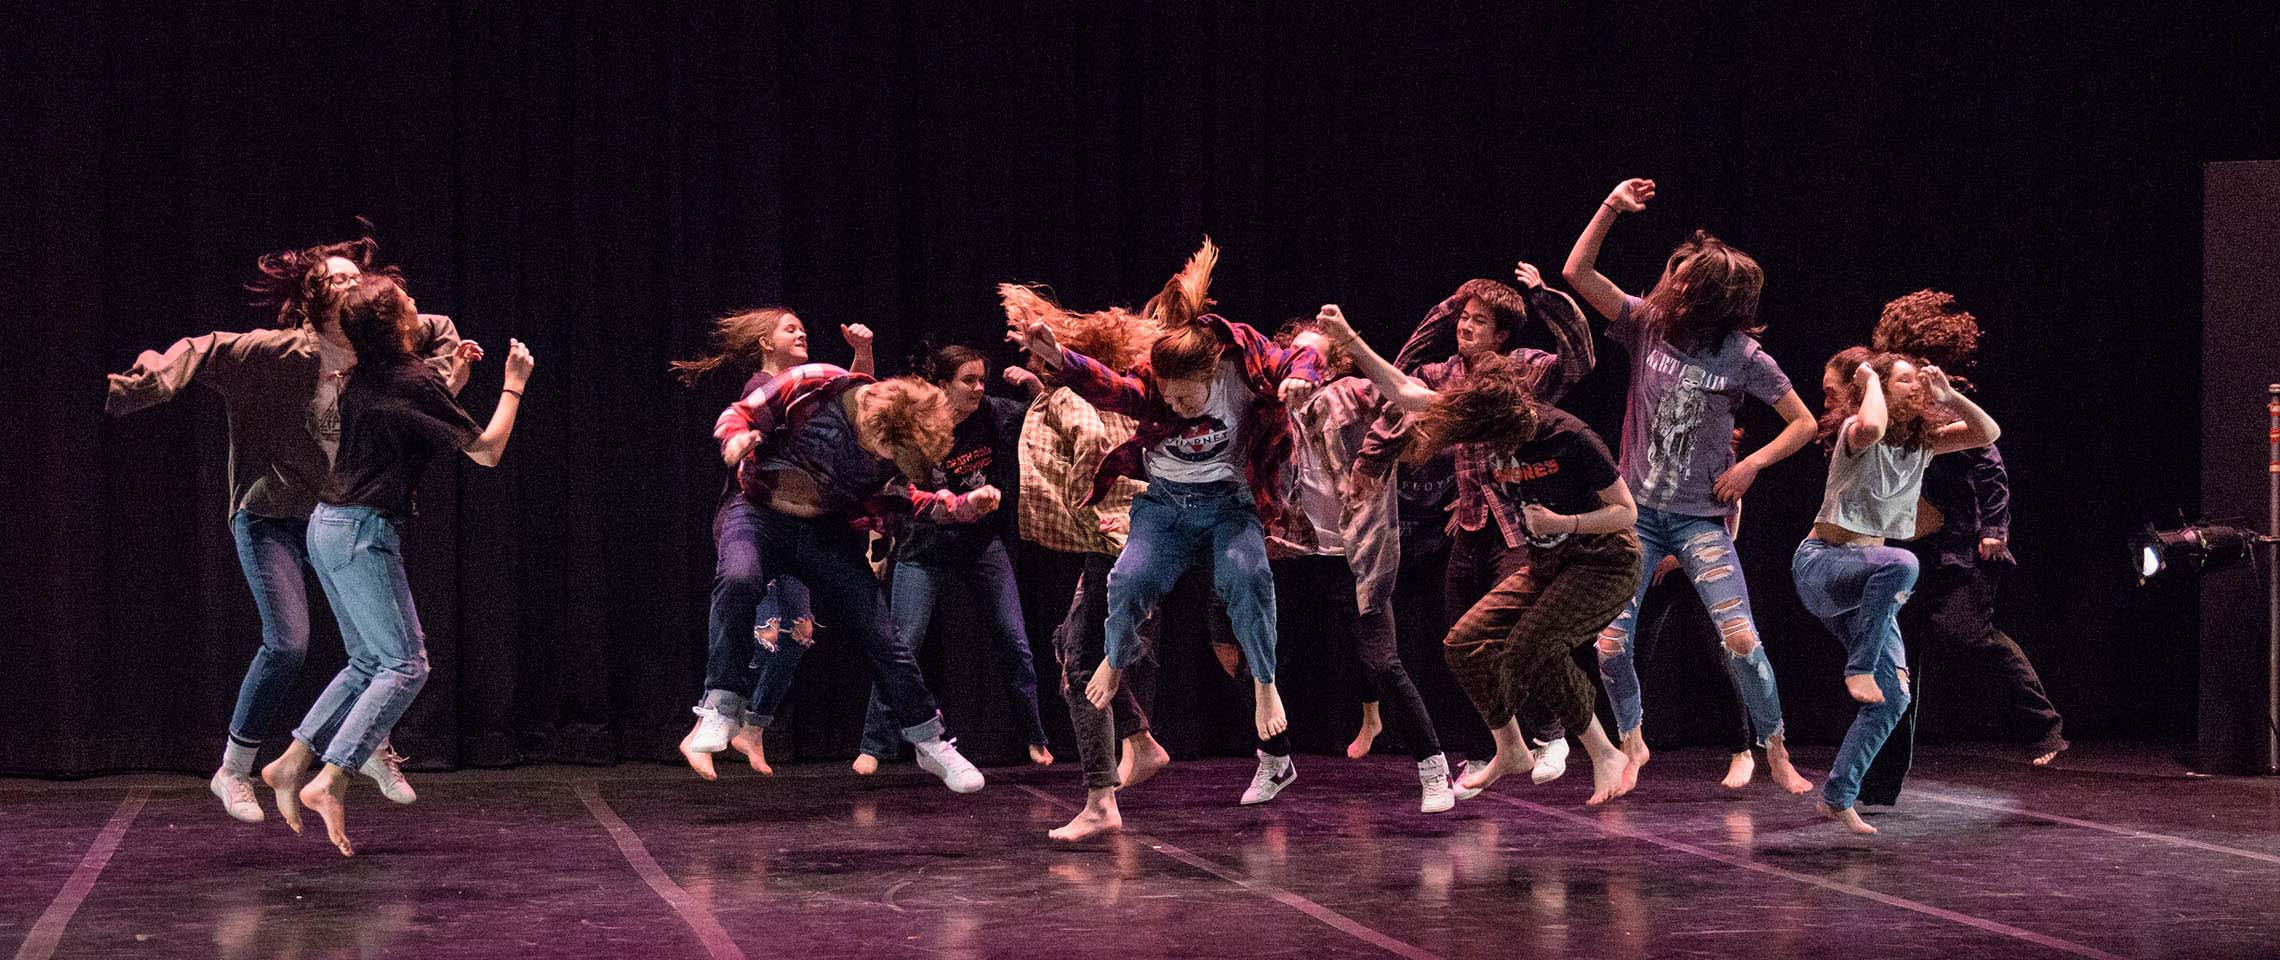 Students jump during Revolution dance concert